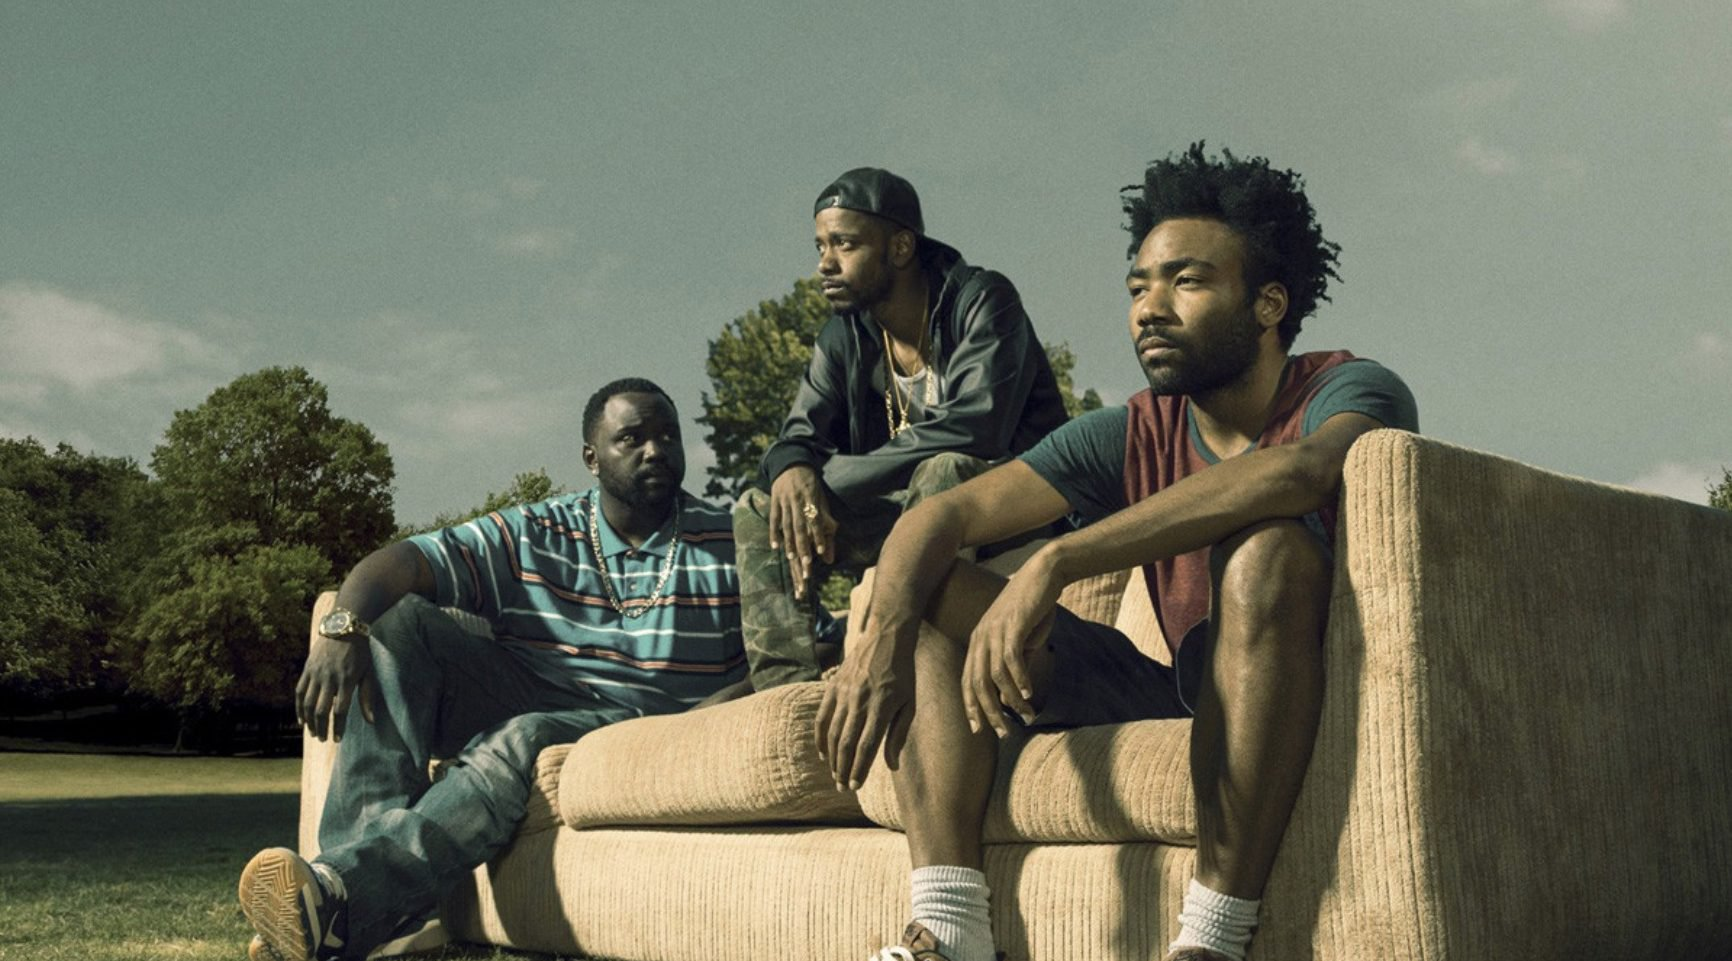 .@DonaldGlover's #Atlanta is the most-nominated comedy series this year with 16 nods https://t.co/PM7BVAm7Cc #Emmys https://t.co/X9G4DGUFgV